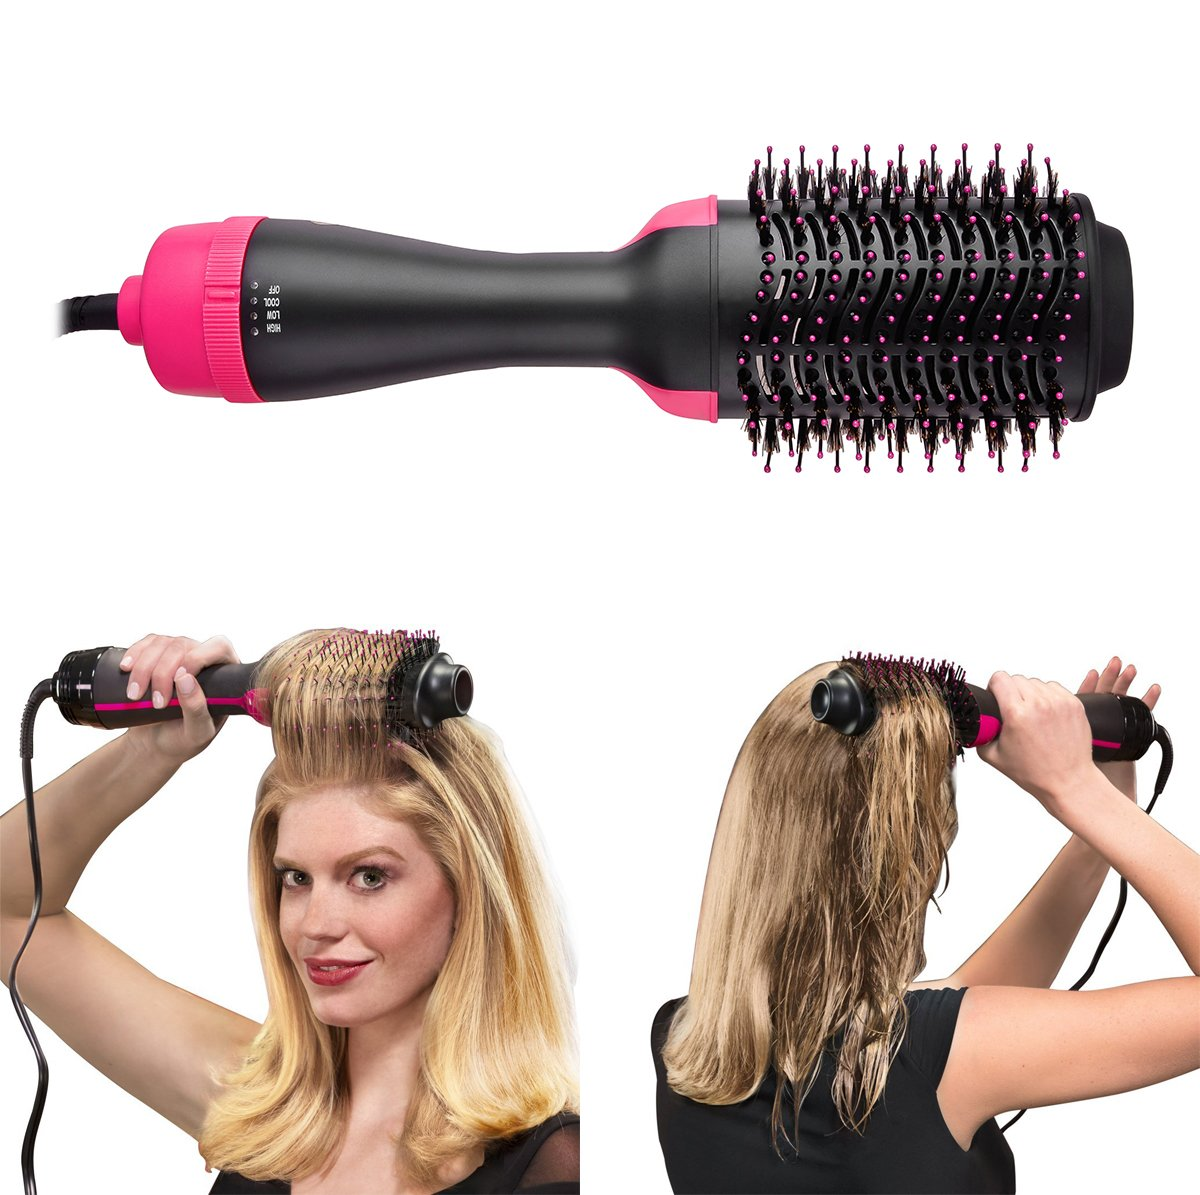 One Step Hair Dryer and Volumizer, szwintec Oval Blower Hair Dryer Salon Hot Air Paddle Styling Brush Negative Ion Generator Hair Straightener Curler Comb for All Hair Types